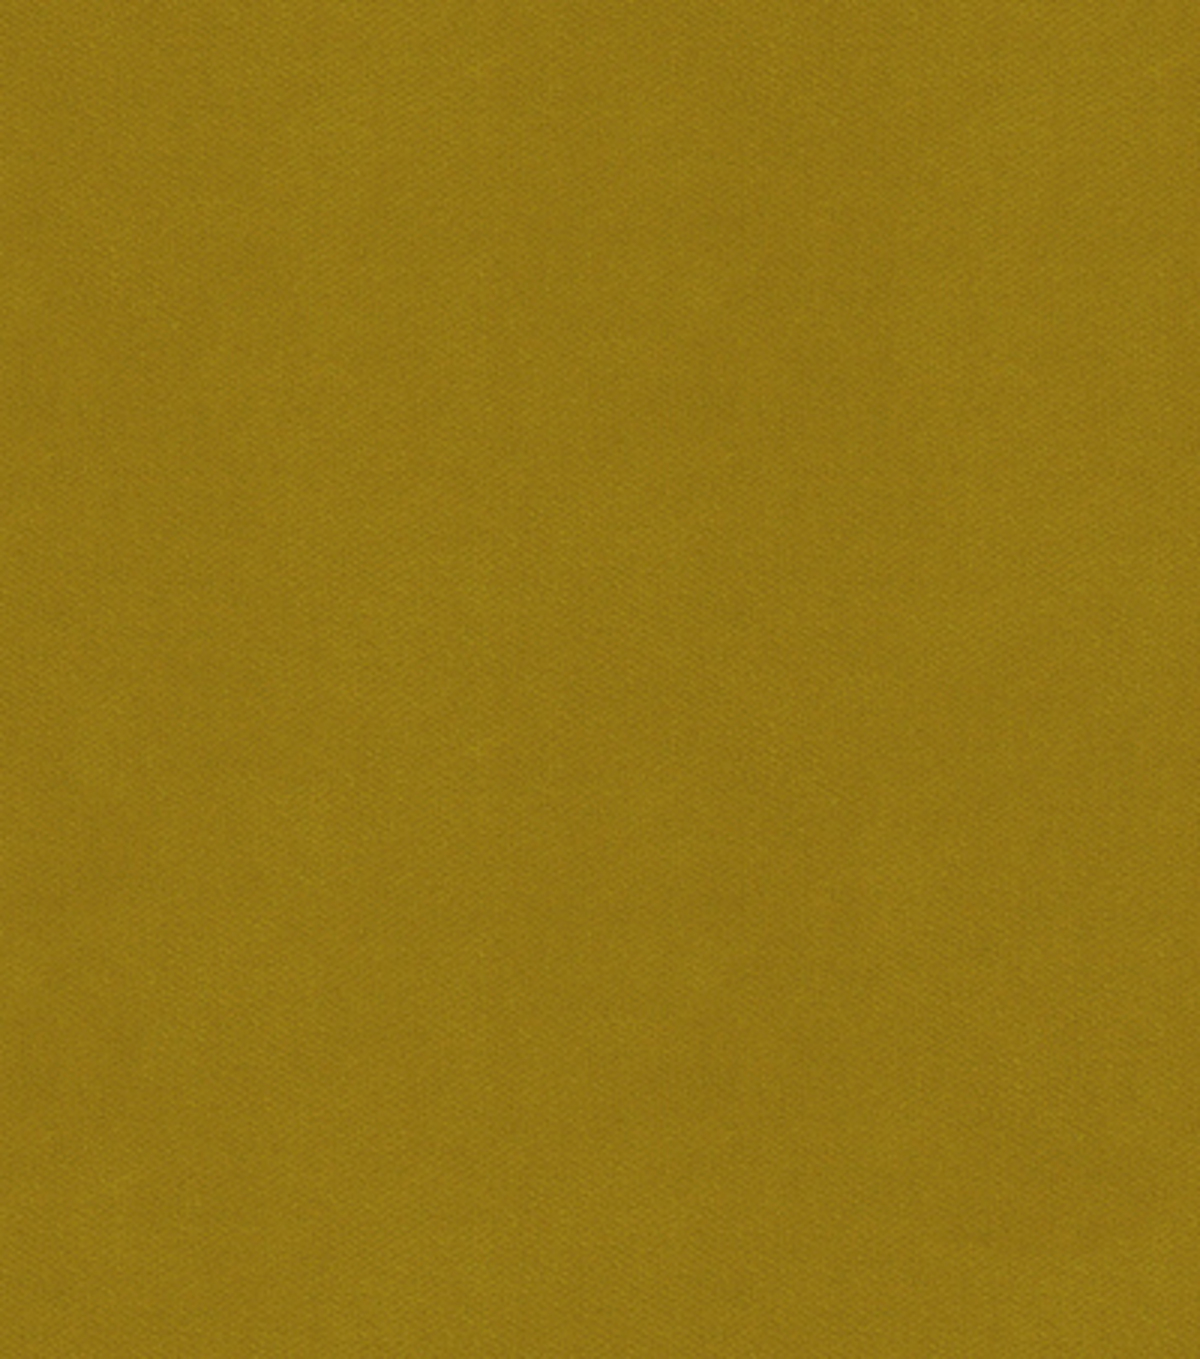 Lightweight Decor Fabric-Como-130-Mustard